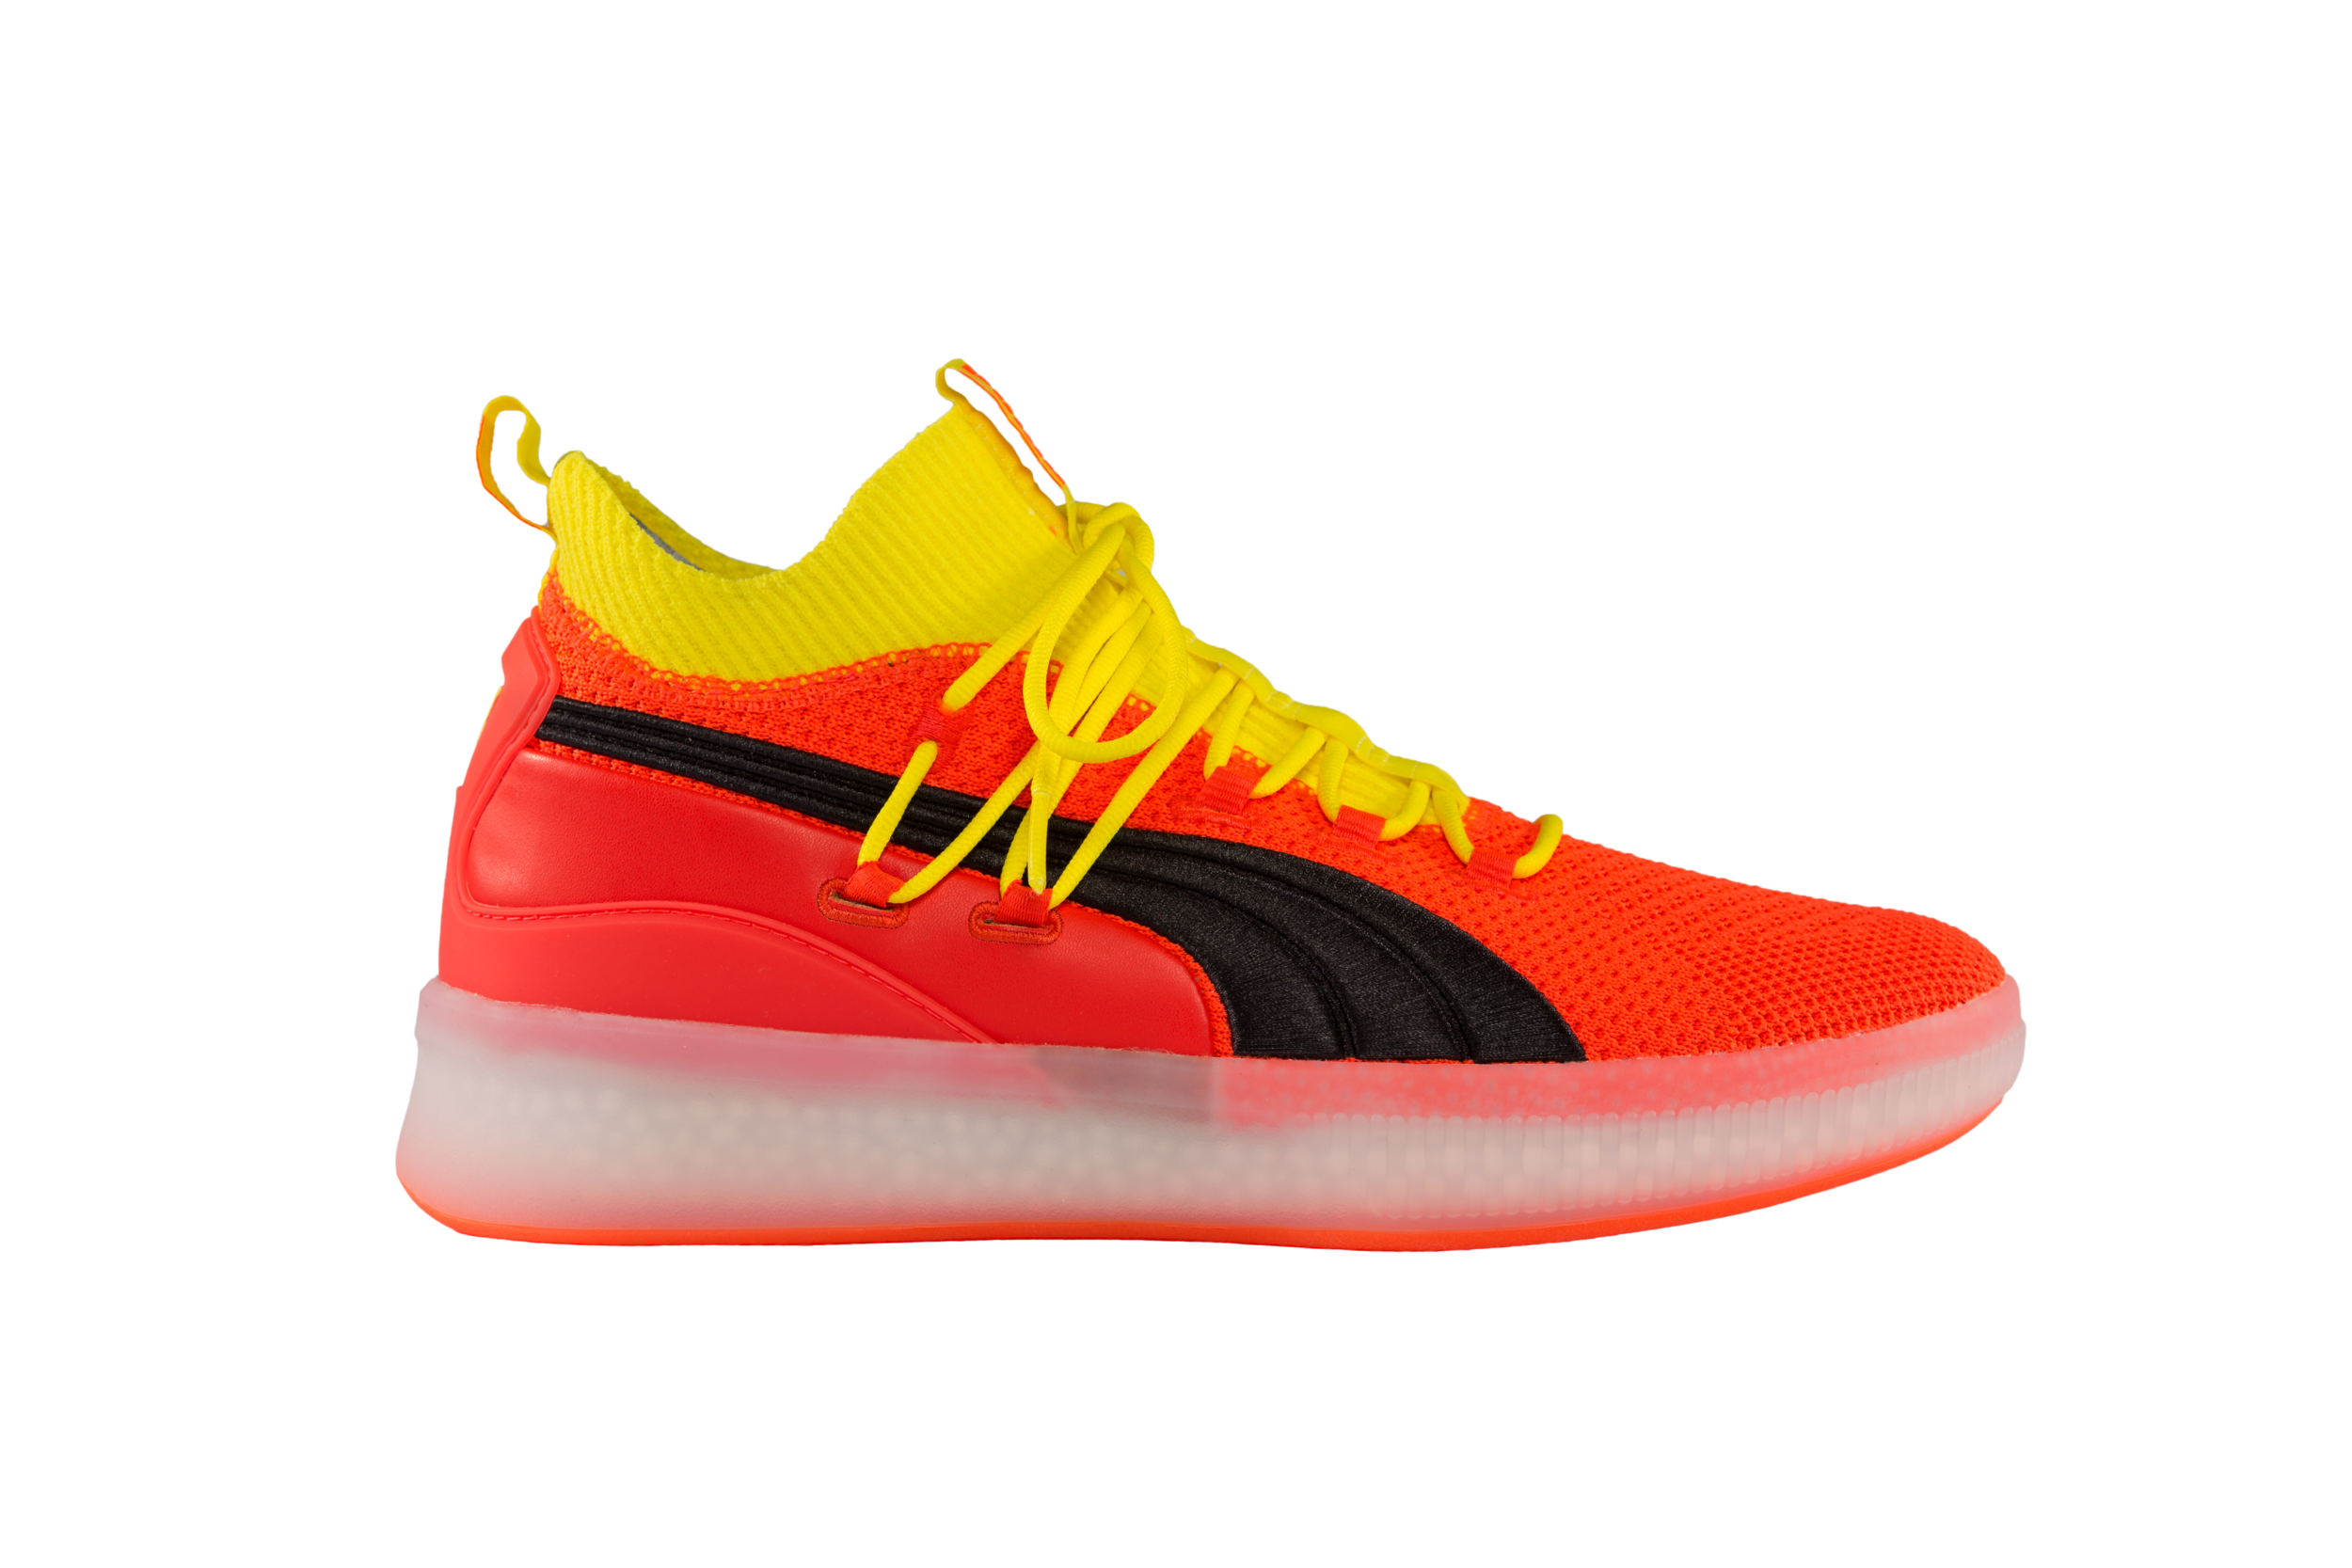 Puma_CCD_red_yellow